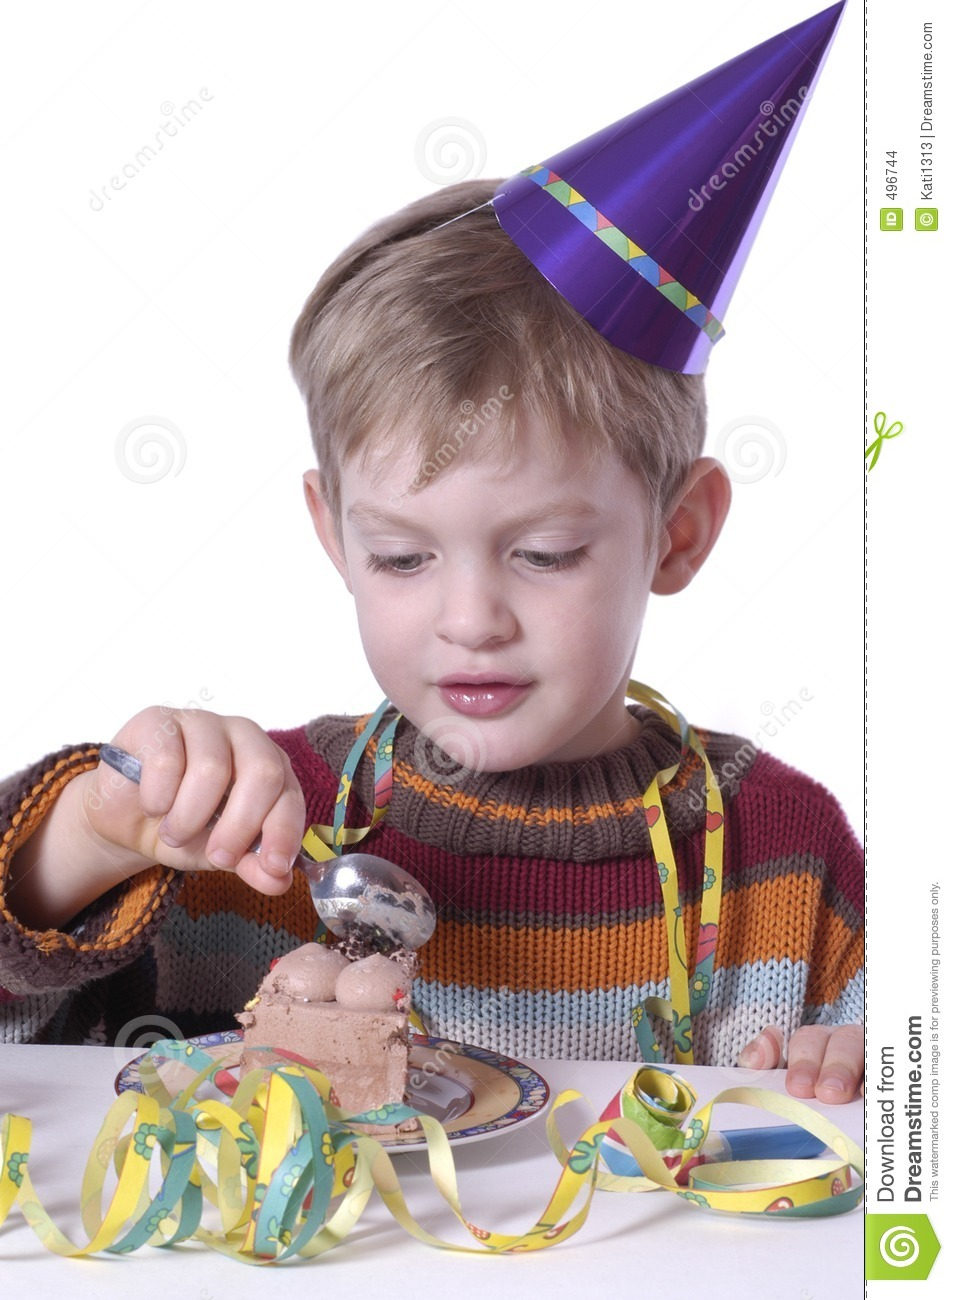 Eating The Birthday Cake Stock Images - Image: 496744